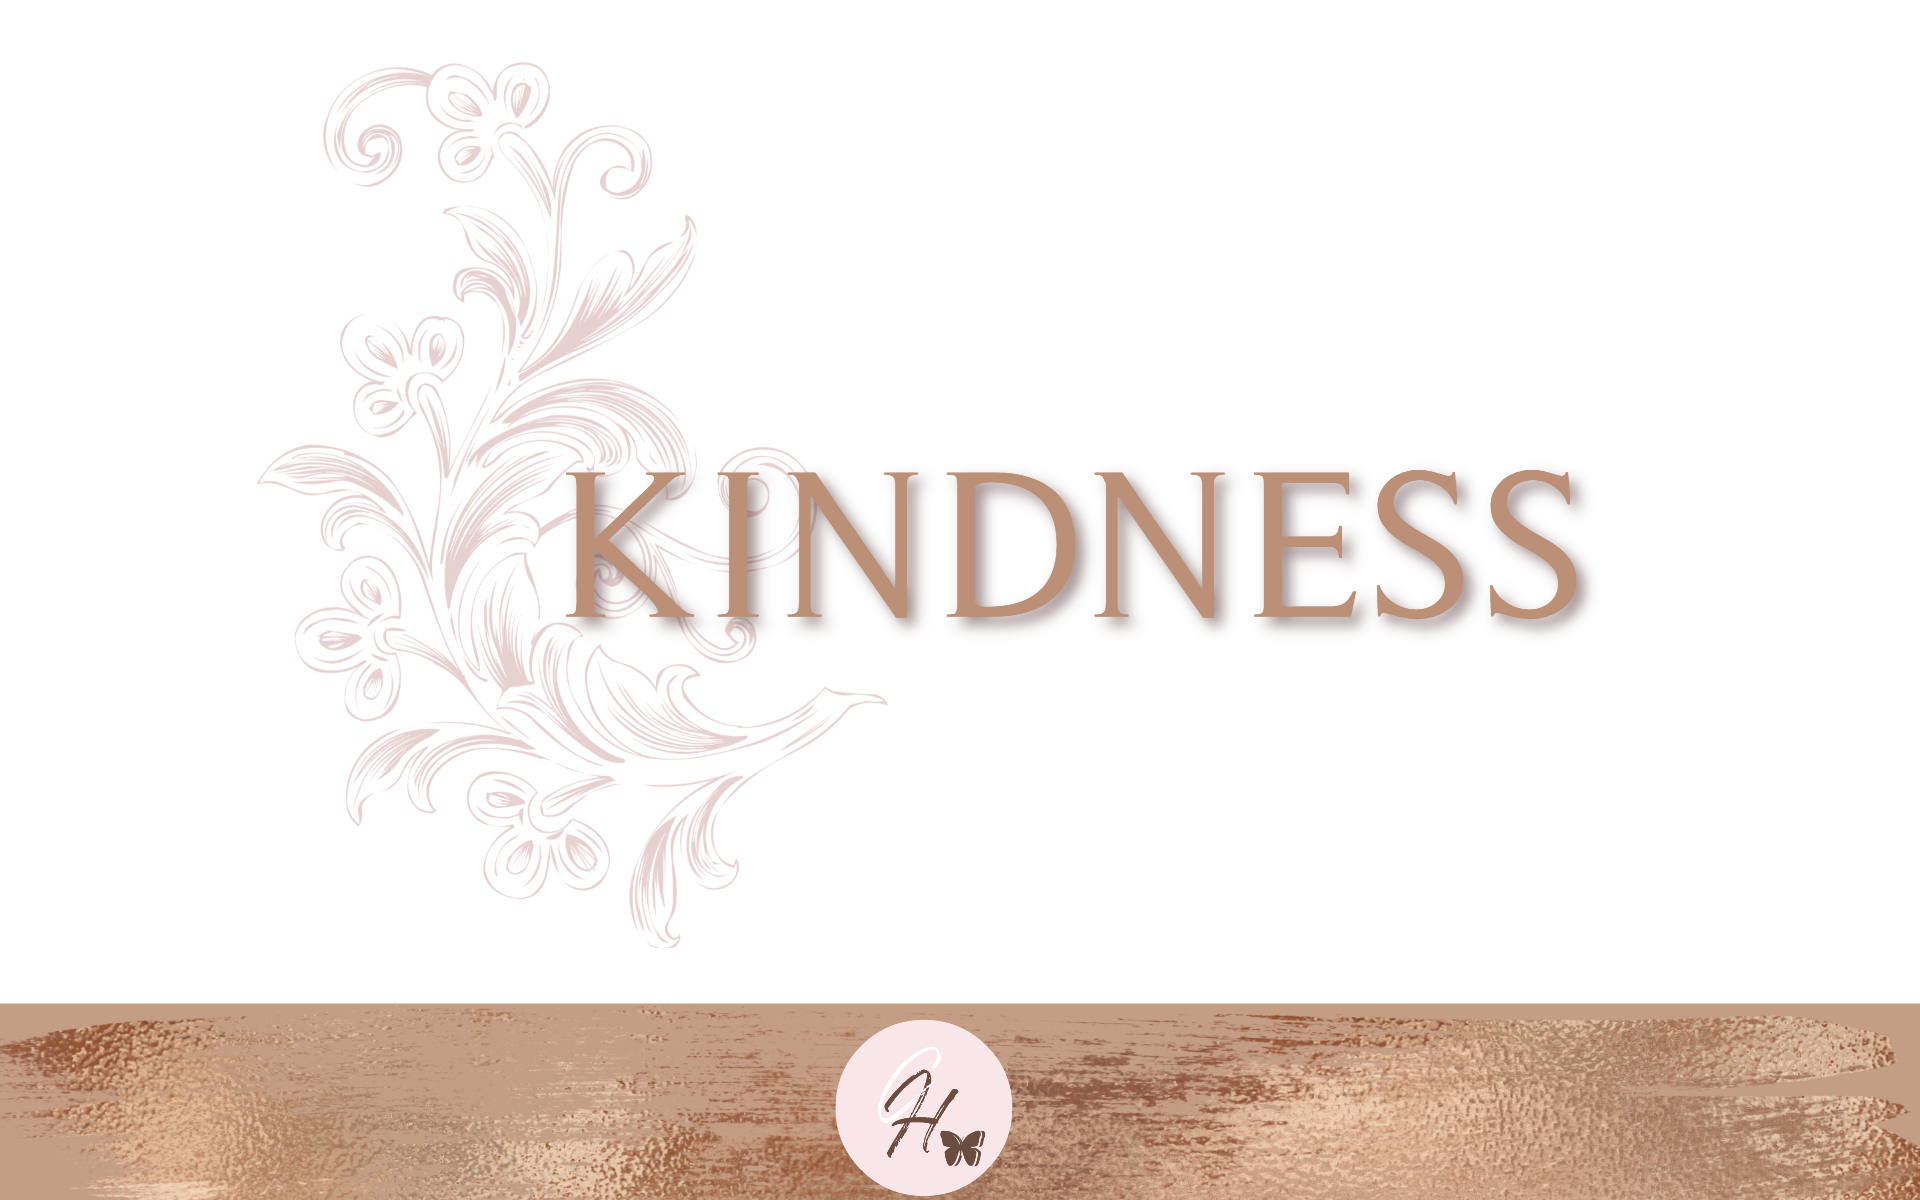 Kindness - Bible Study Guide